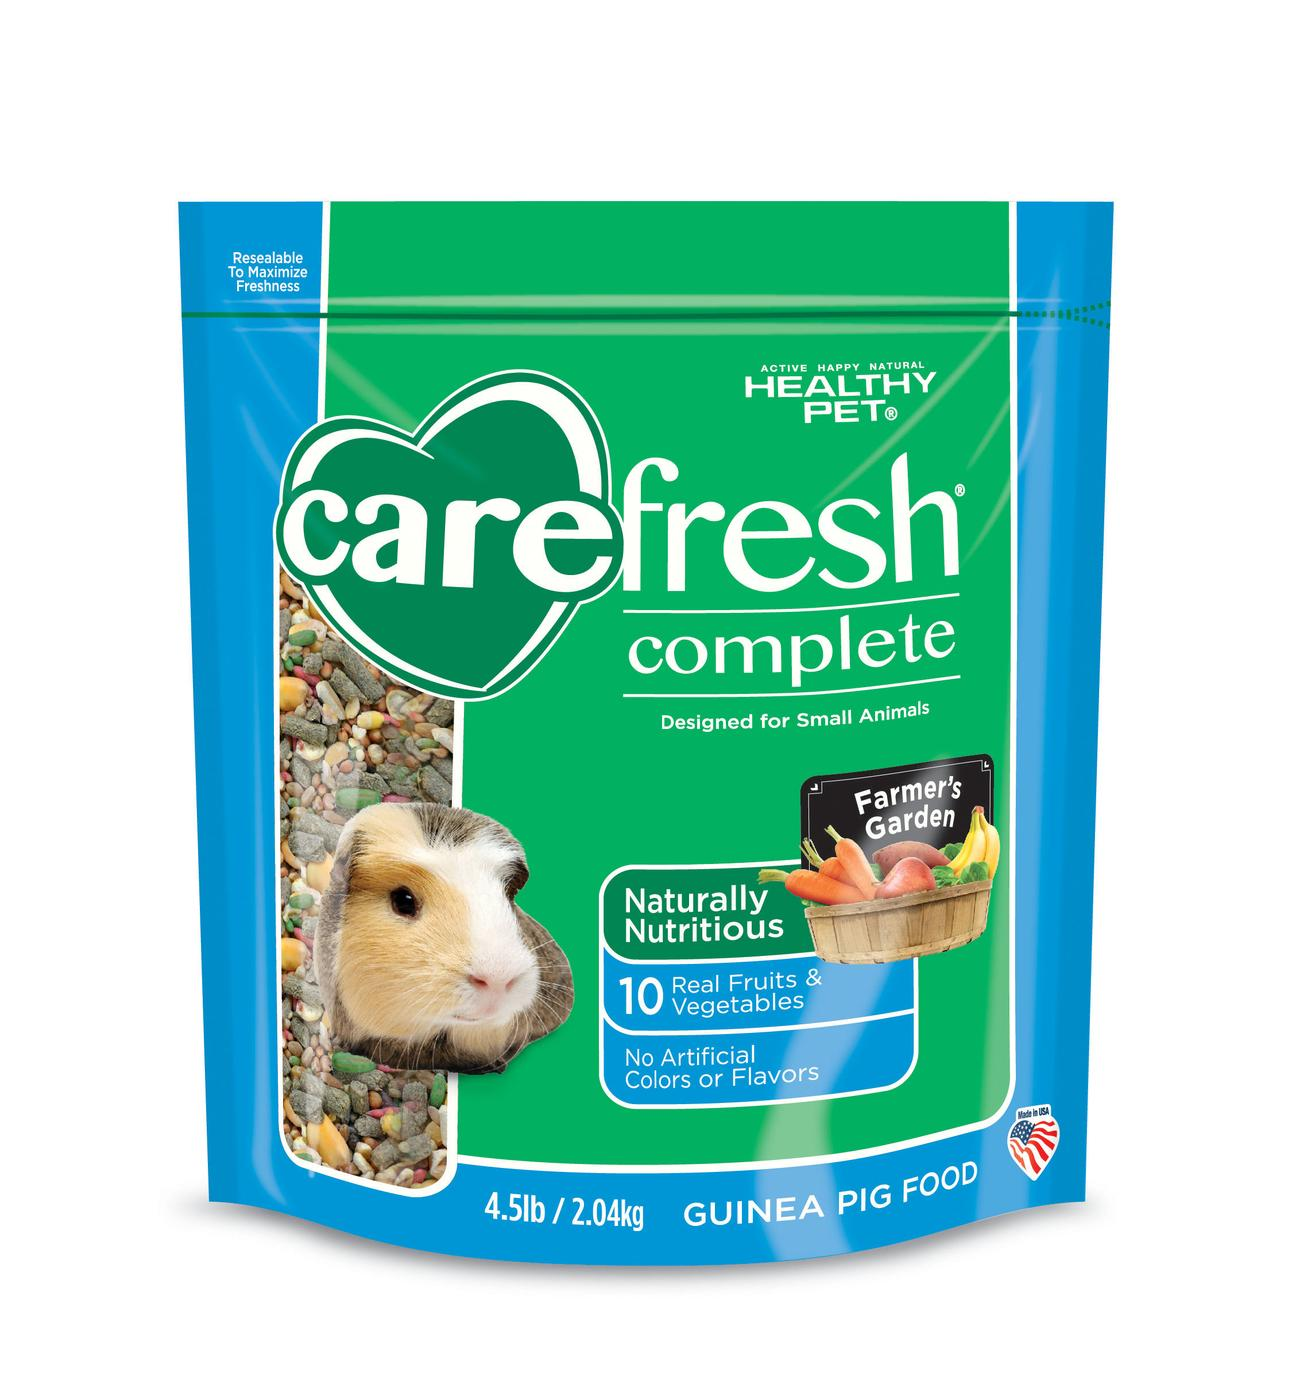 Carefresh® Complete Guinea Pig Food